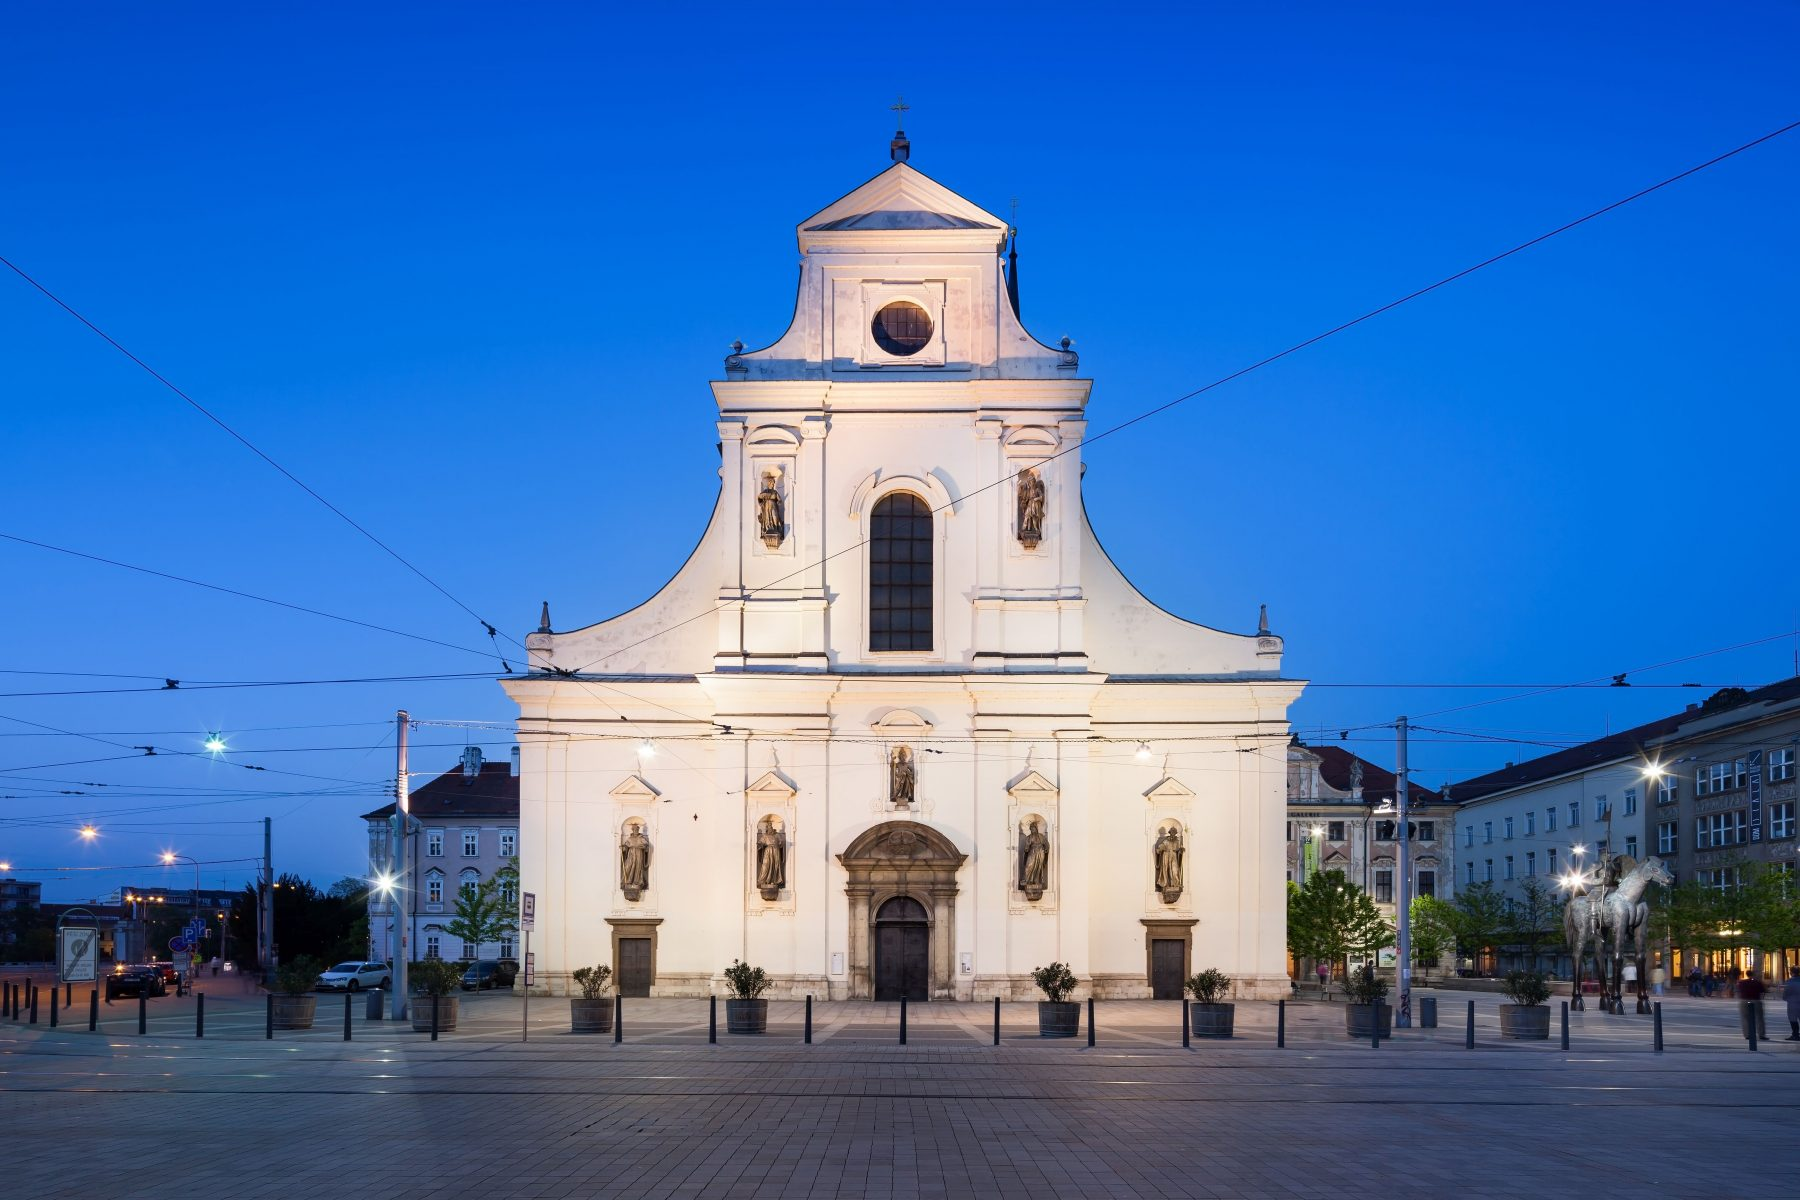 St. Thomas church in Brno